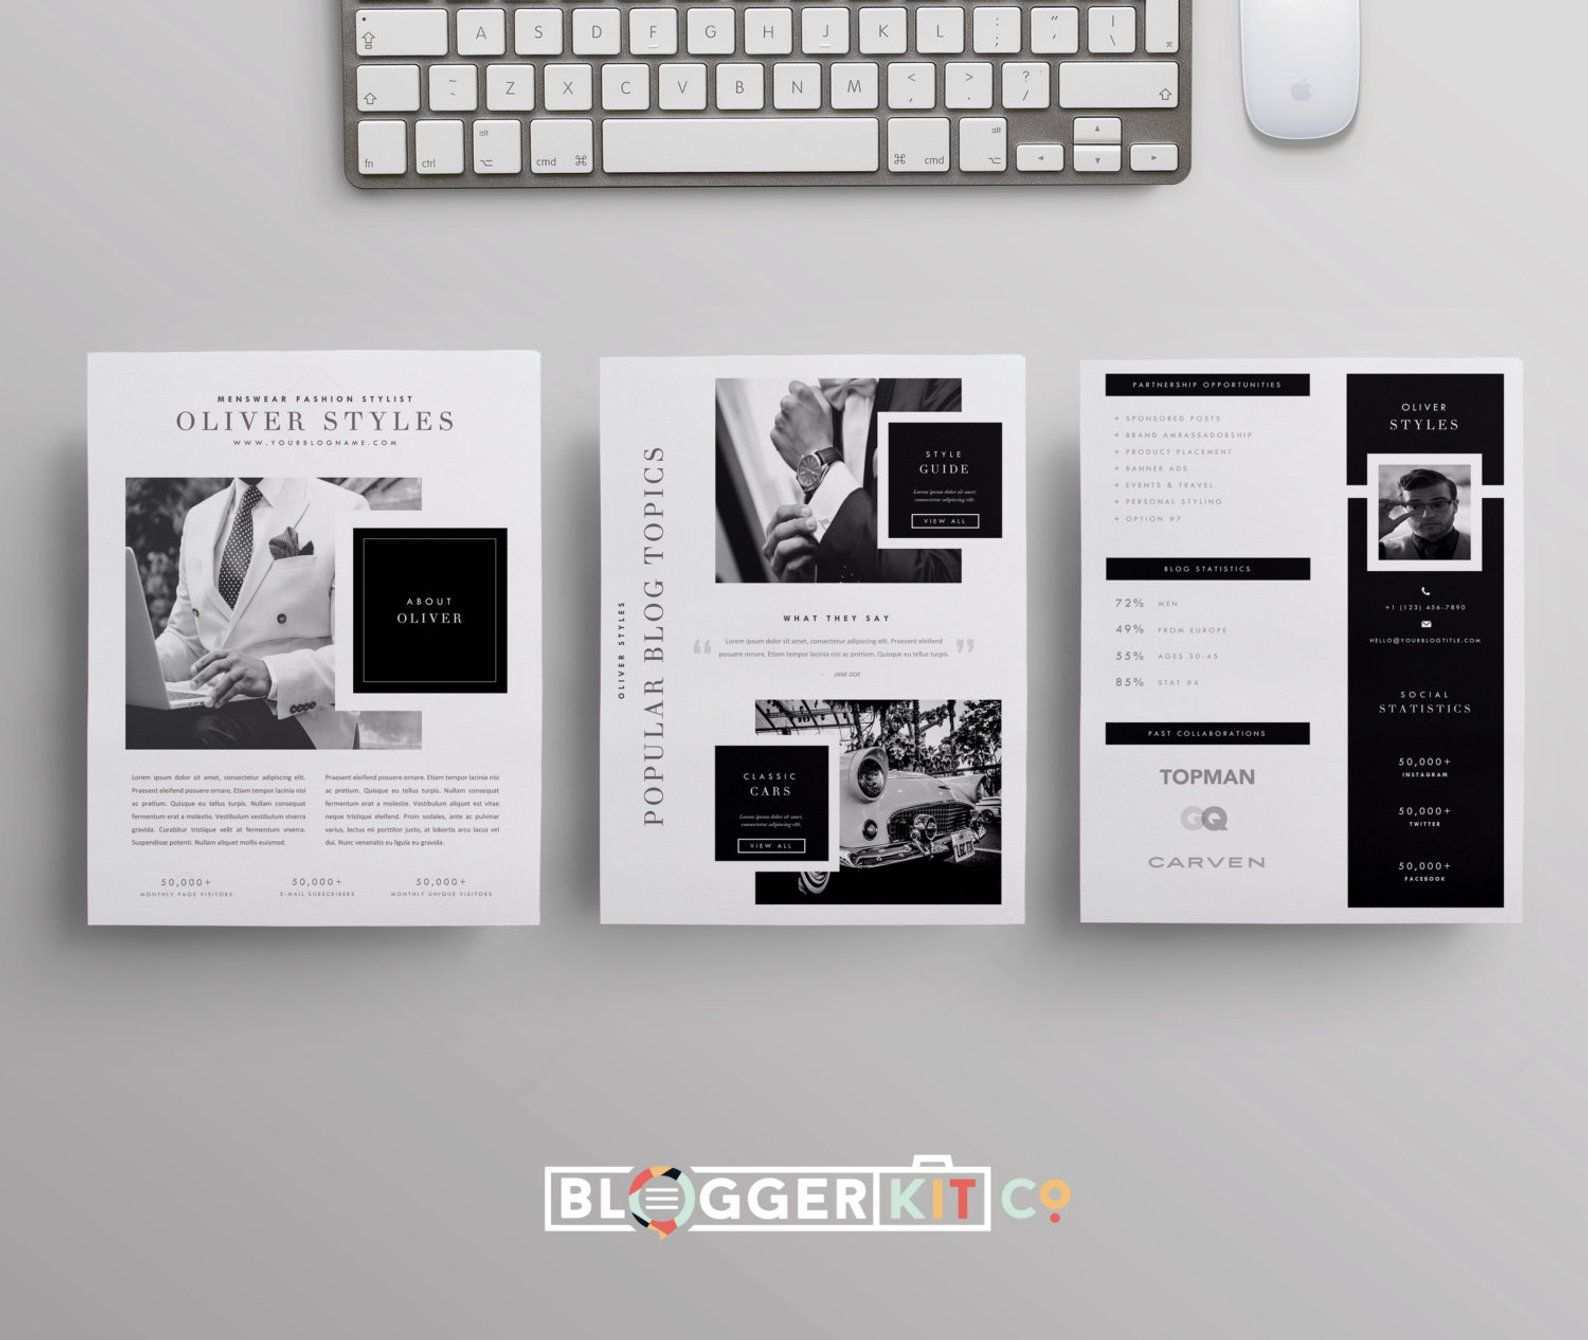 Drei Seiten Media Kit Vorlage Drucken Sie Kit Vorlage Etsy Media Kit Template Blogger Media Kit Template Blogger Media Kit